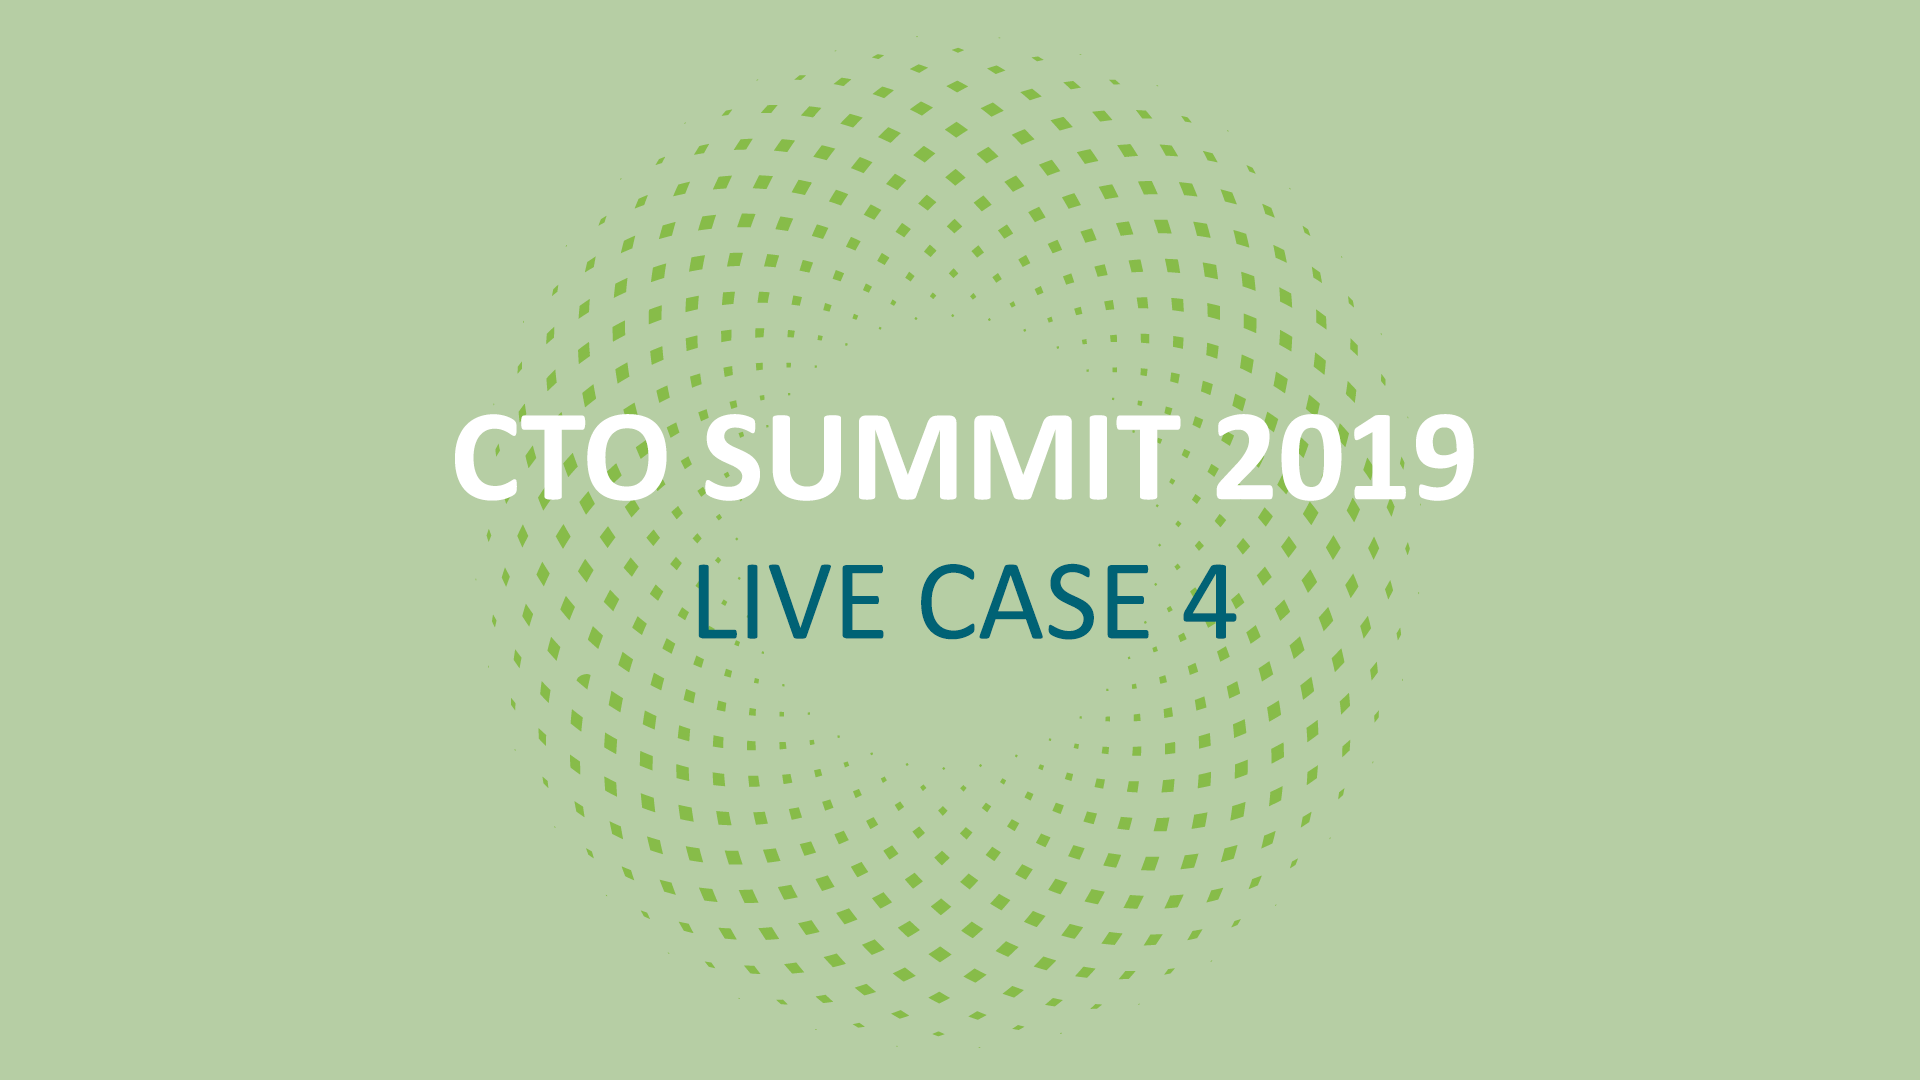 CTO SUMMIT 2019: Live Case 4